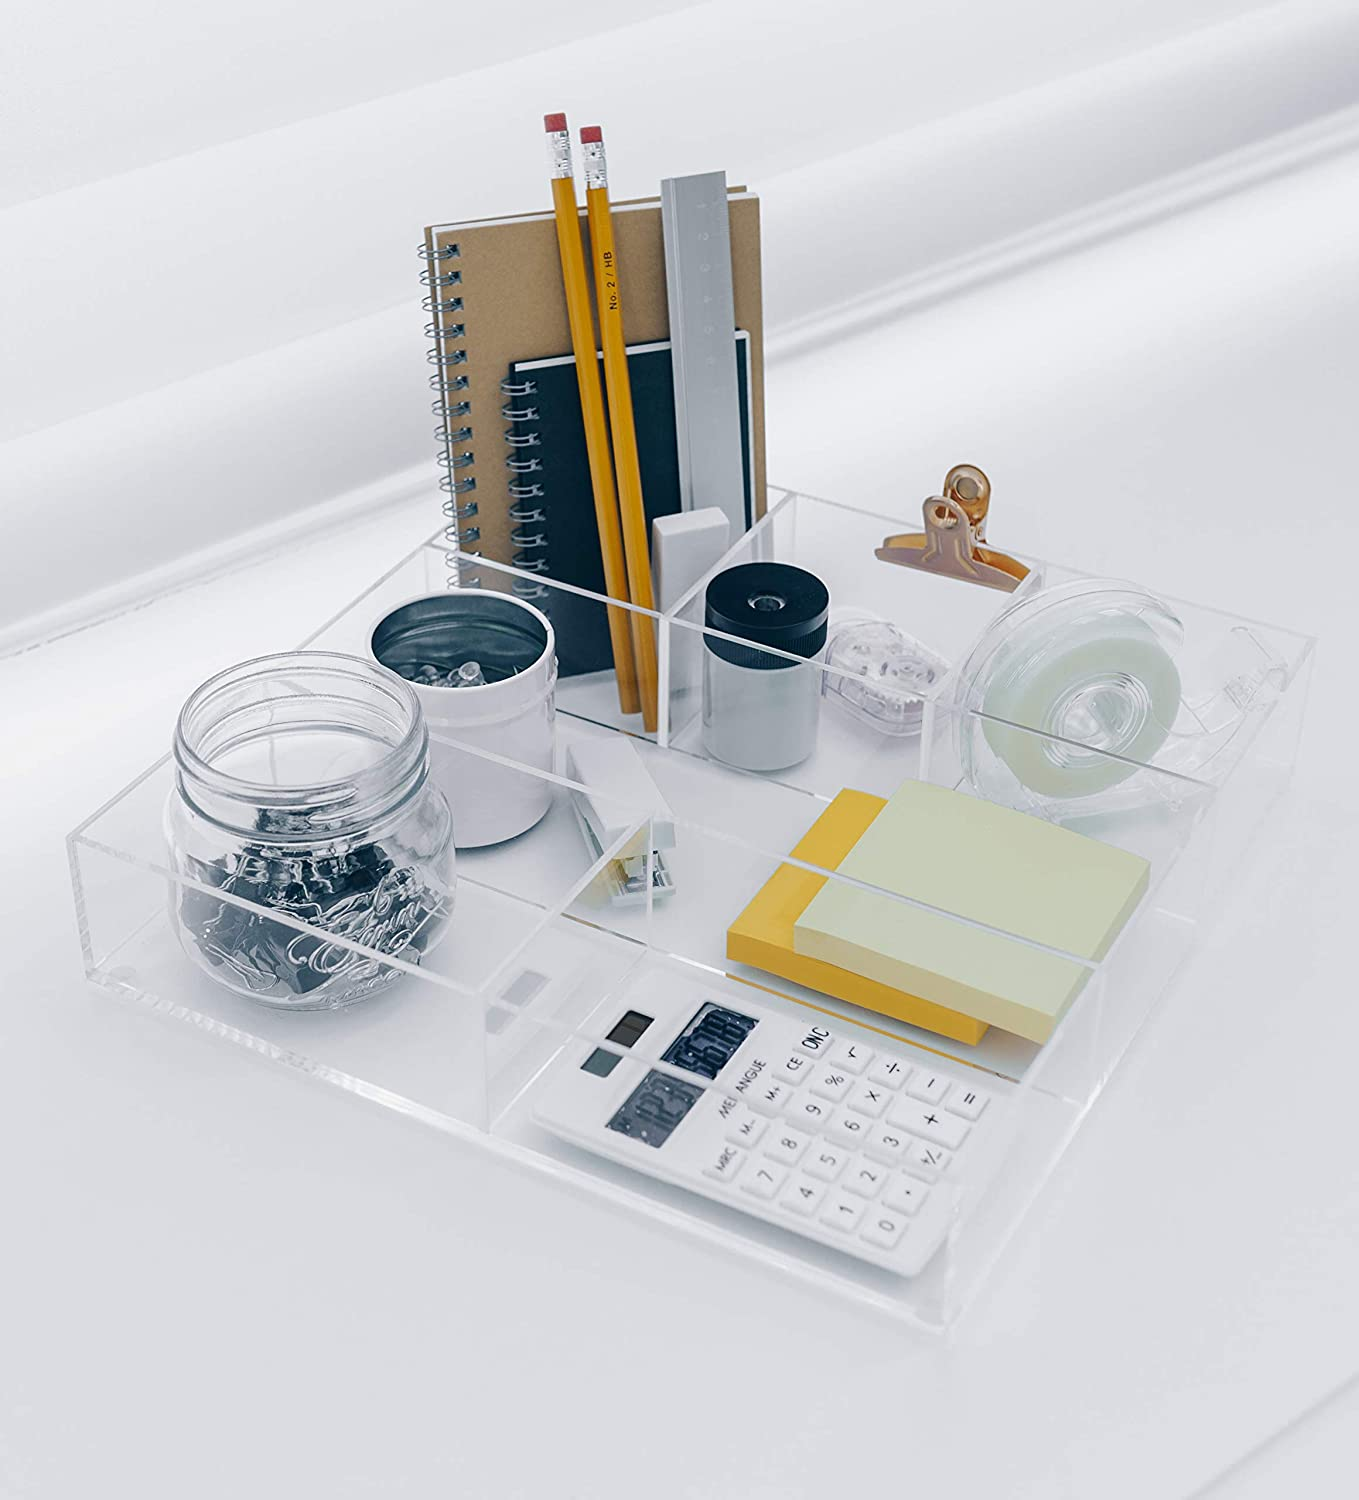 Clear Anti-Slide Acrylic Organizer with Removable Dividers